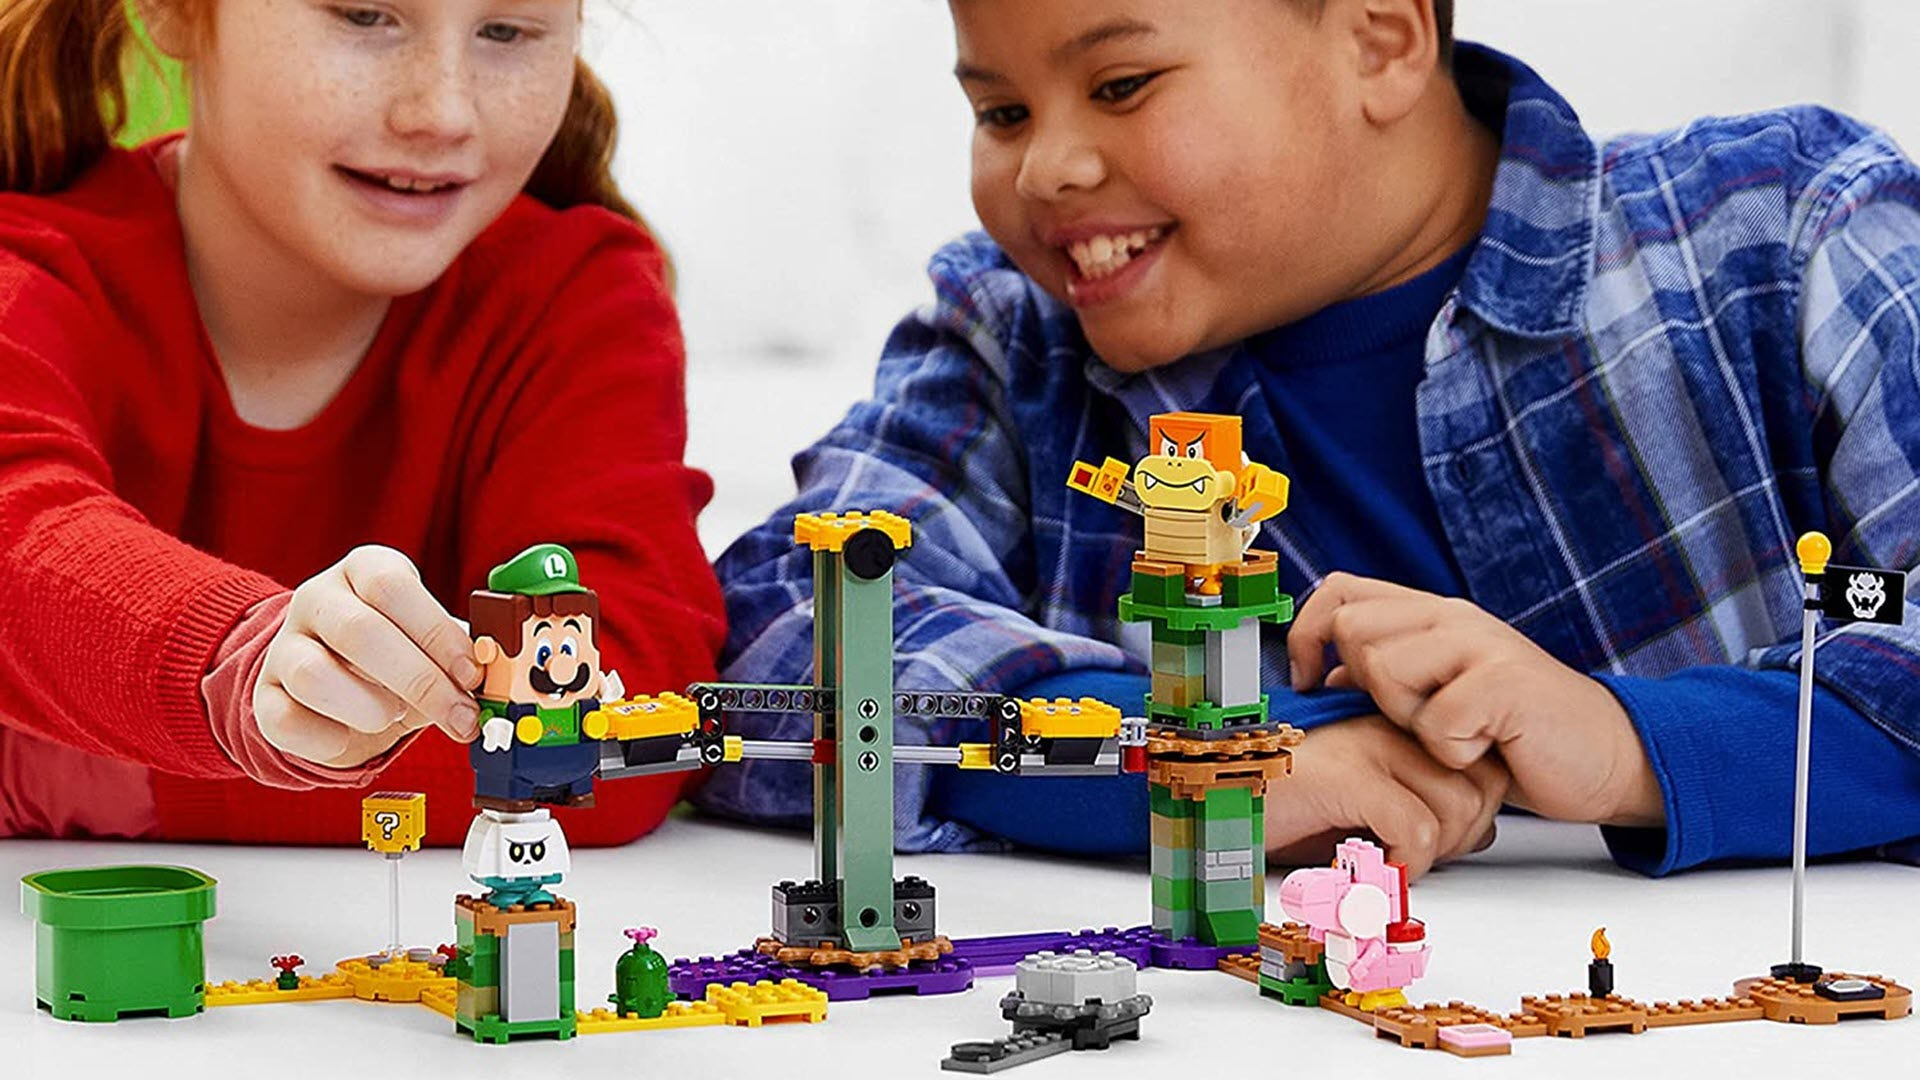 A LEGO Luigi course with Boom Boom, Pink Yoshi, and Bone Goomba